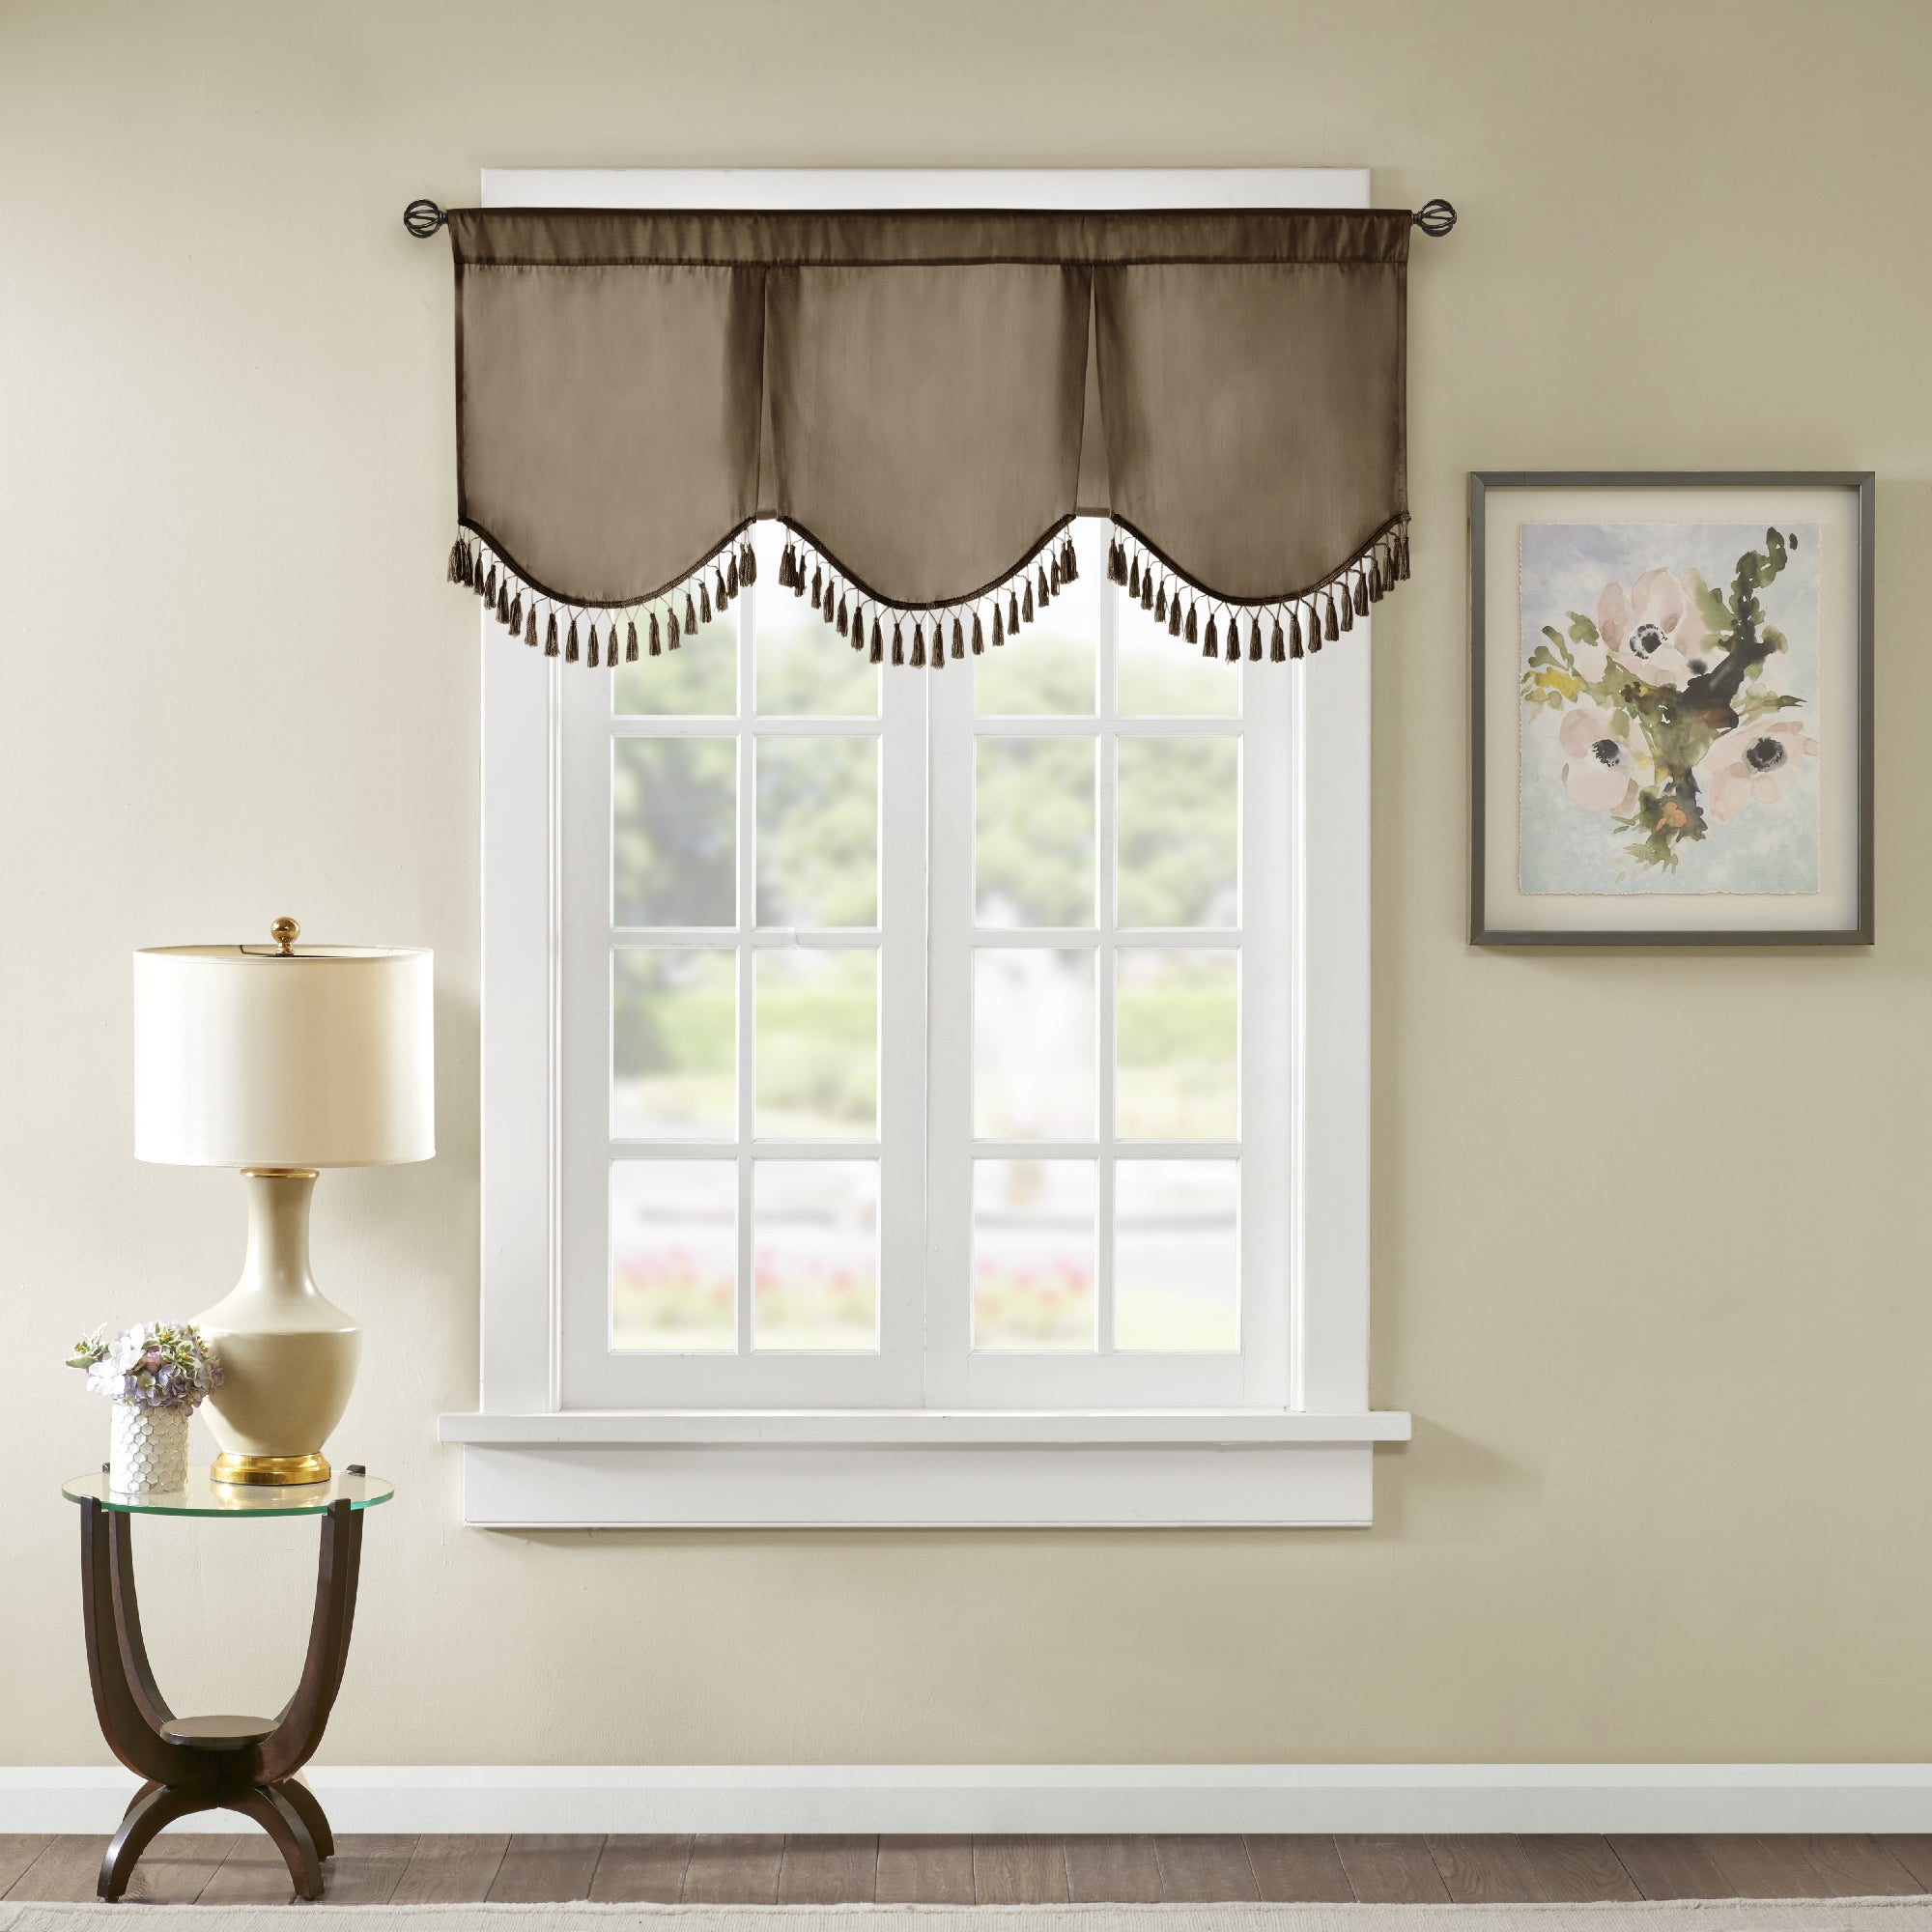 window vignette draperies a by custom millville with fabric valance valence de shade treatments above box pleat